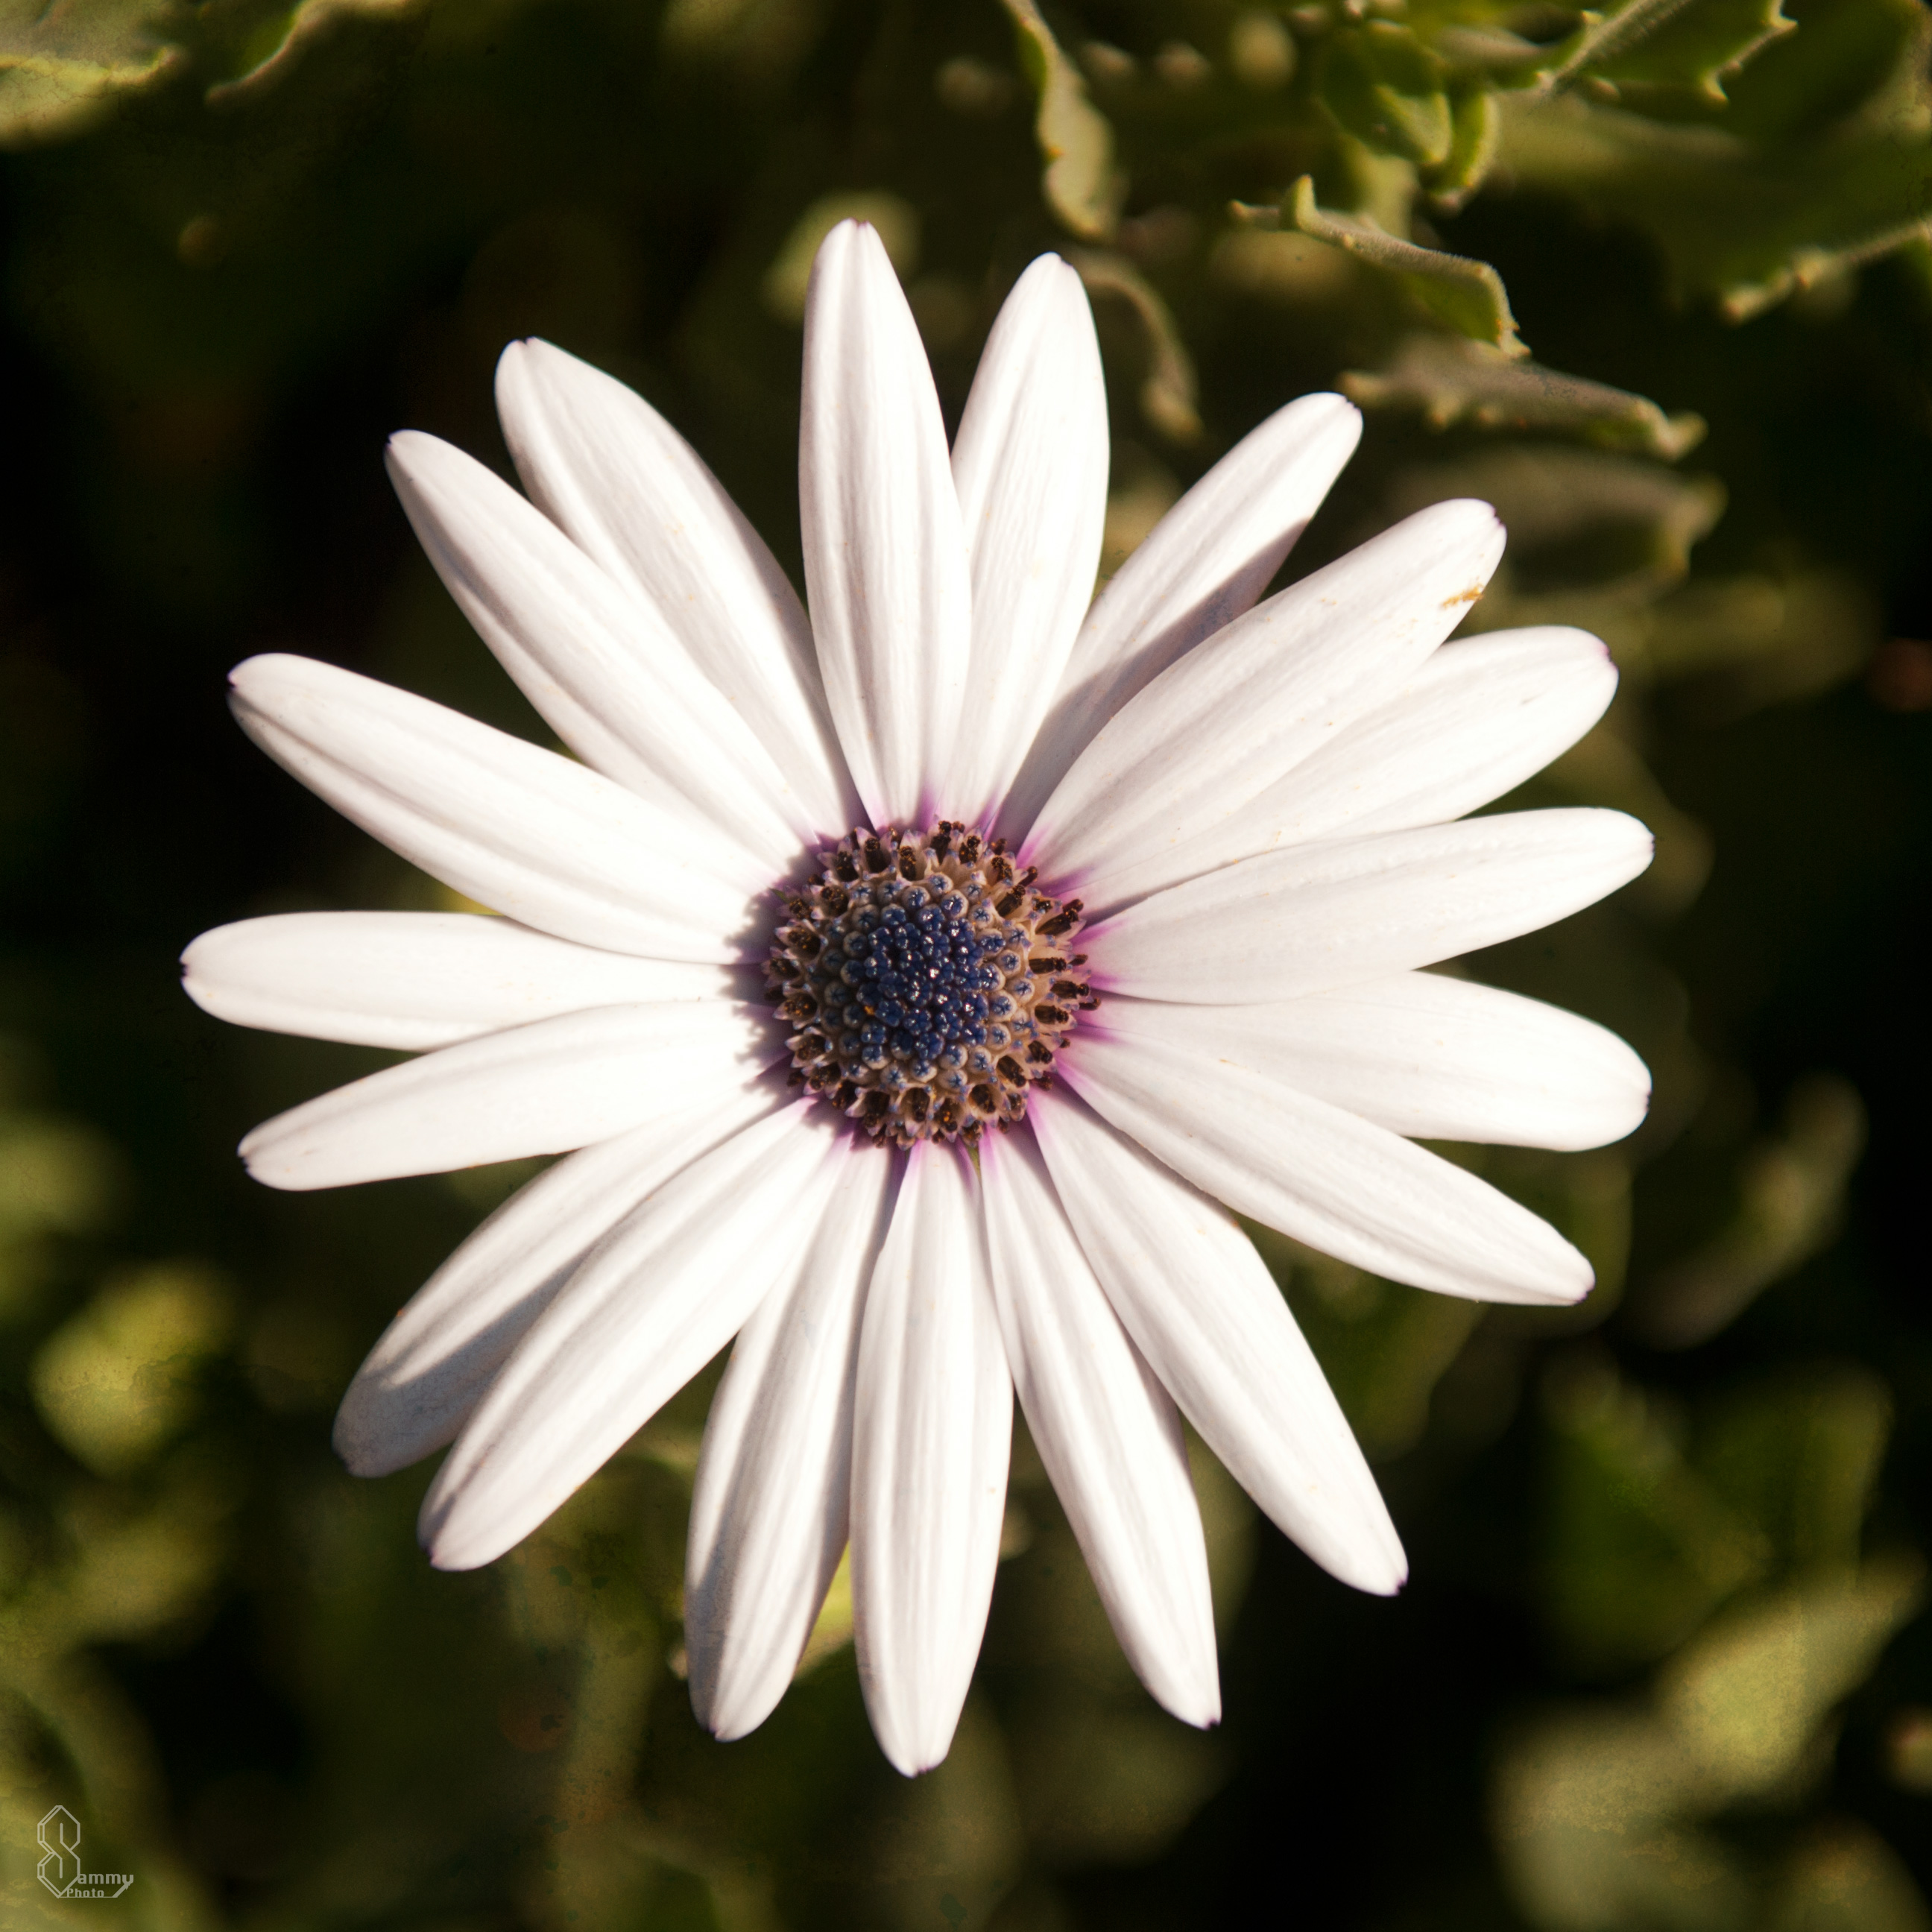 Floral photography sammy photo this minimalistic white purple eyed daisy was my favorite flower of the day the perfectly round shape of daisy petals is phenomenal izmirmasajfo